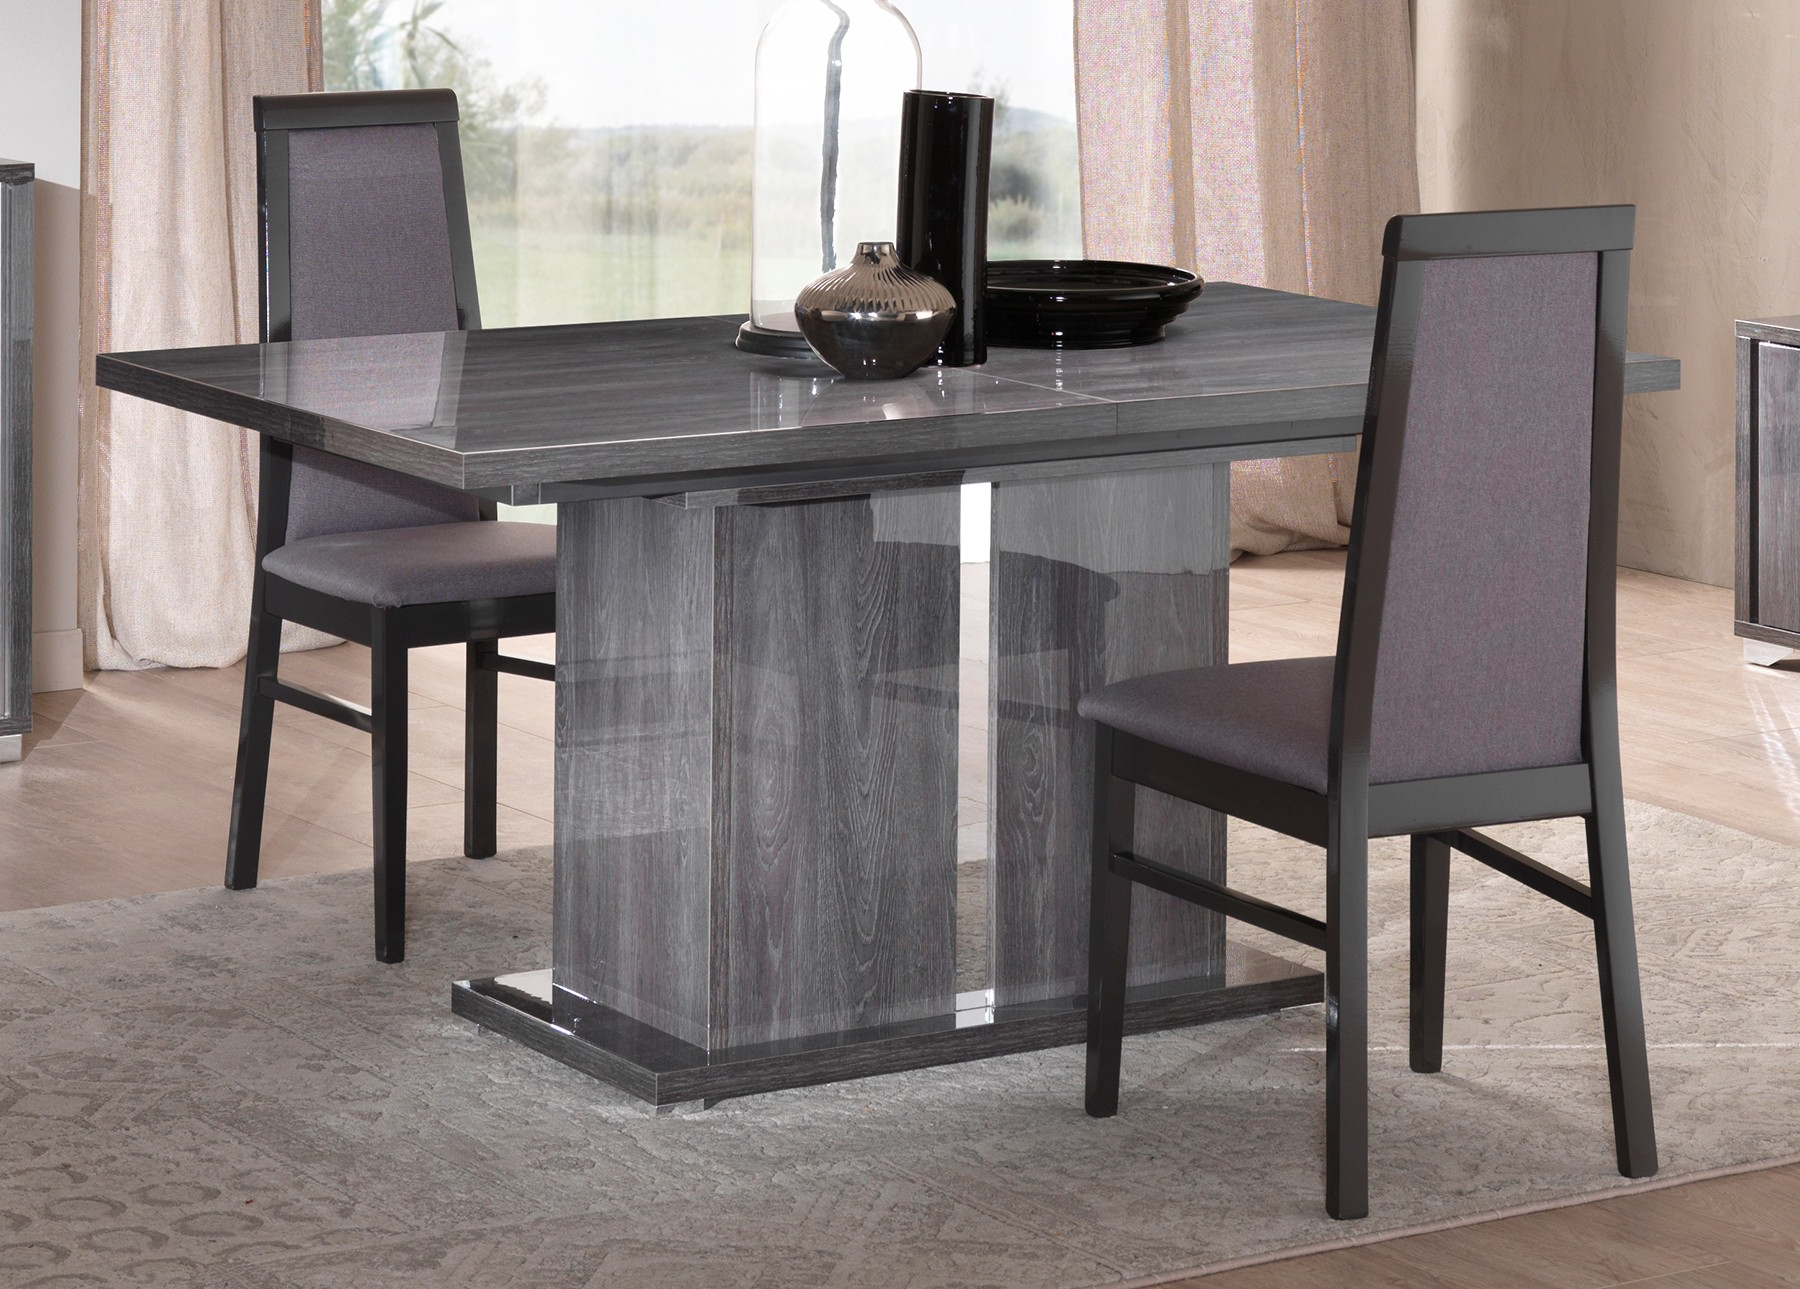 Best and Newest Martino Dining Tables pertaining to San Martino Armony Grey Extending Dining Table